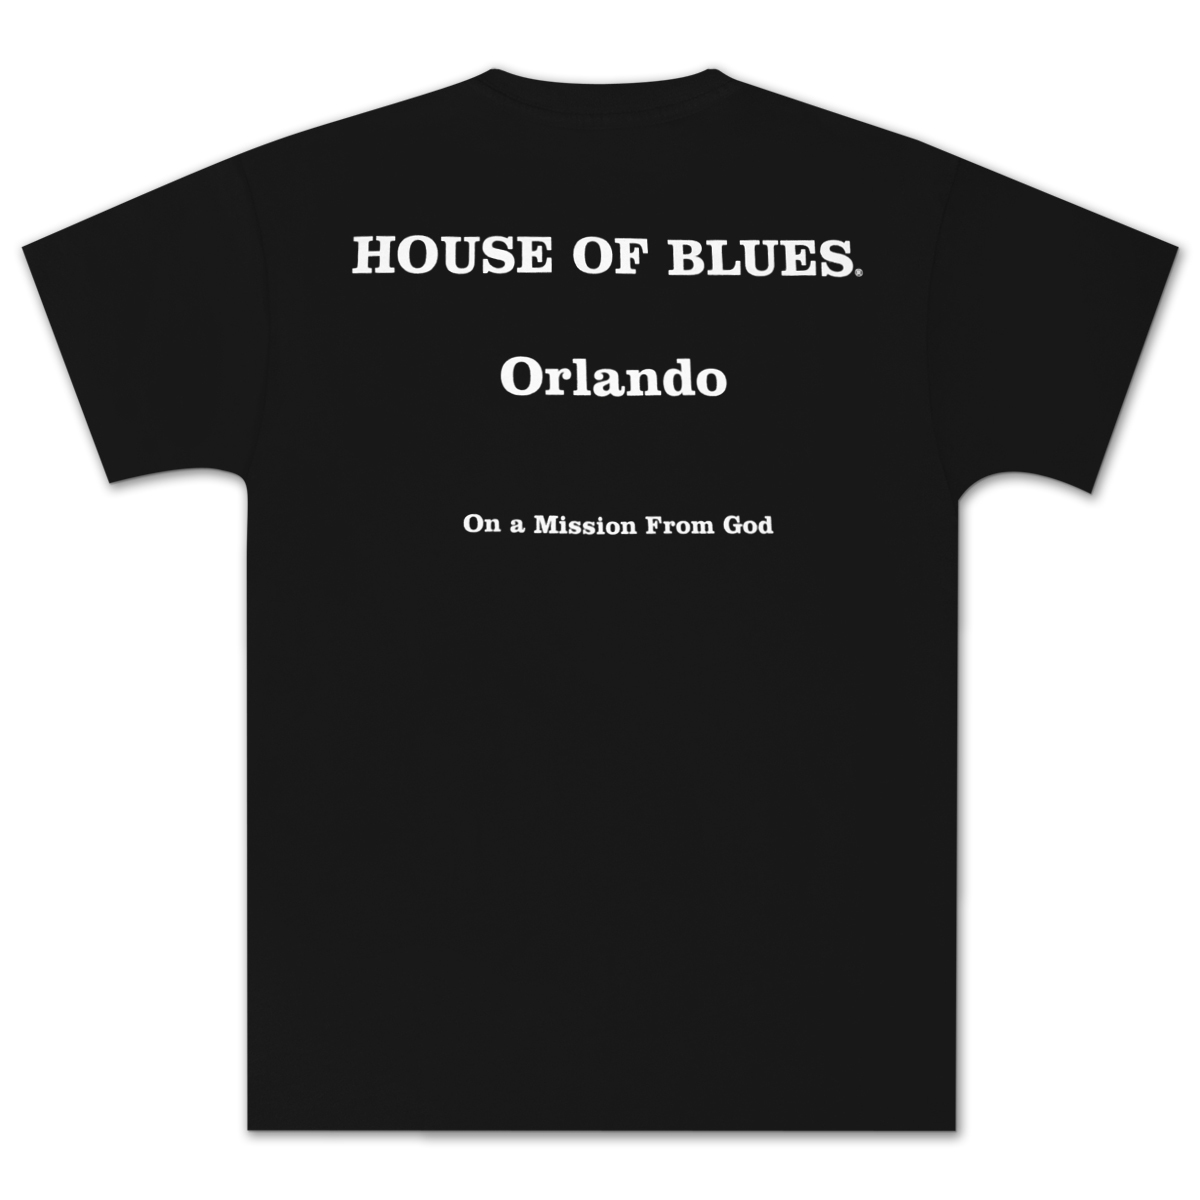 House of Blues Black J&E T-Shirt - Orlando